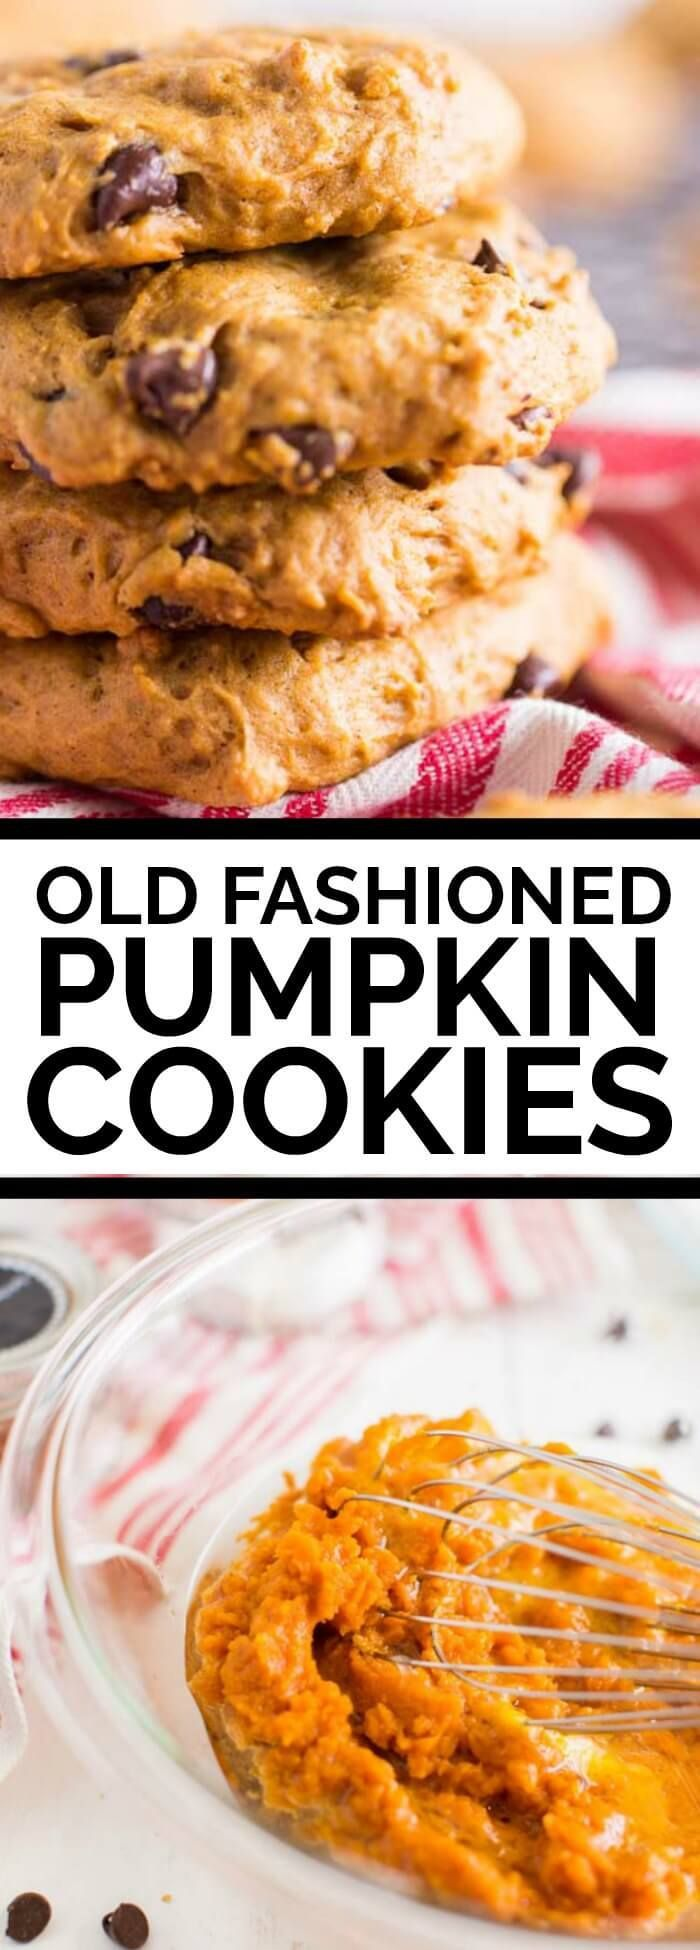 Soft Old Fashioned Pumpkin Cookies via @spaceships…  Yummy! A bit cakey, but delicious. I got 3 dozen out of this recipe.